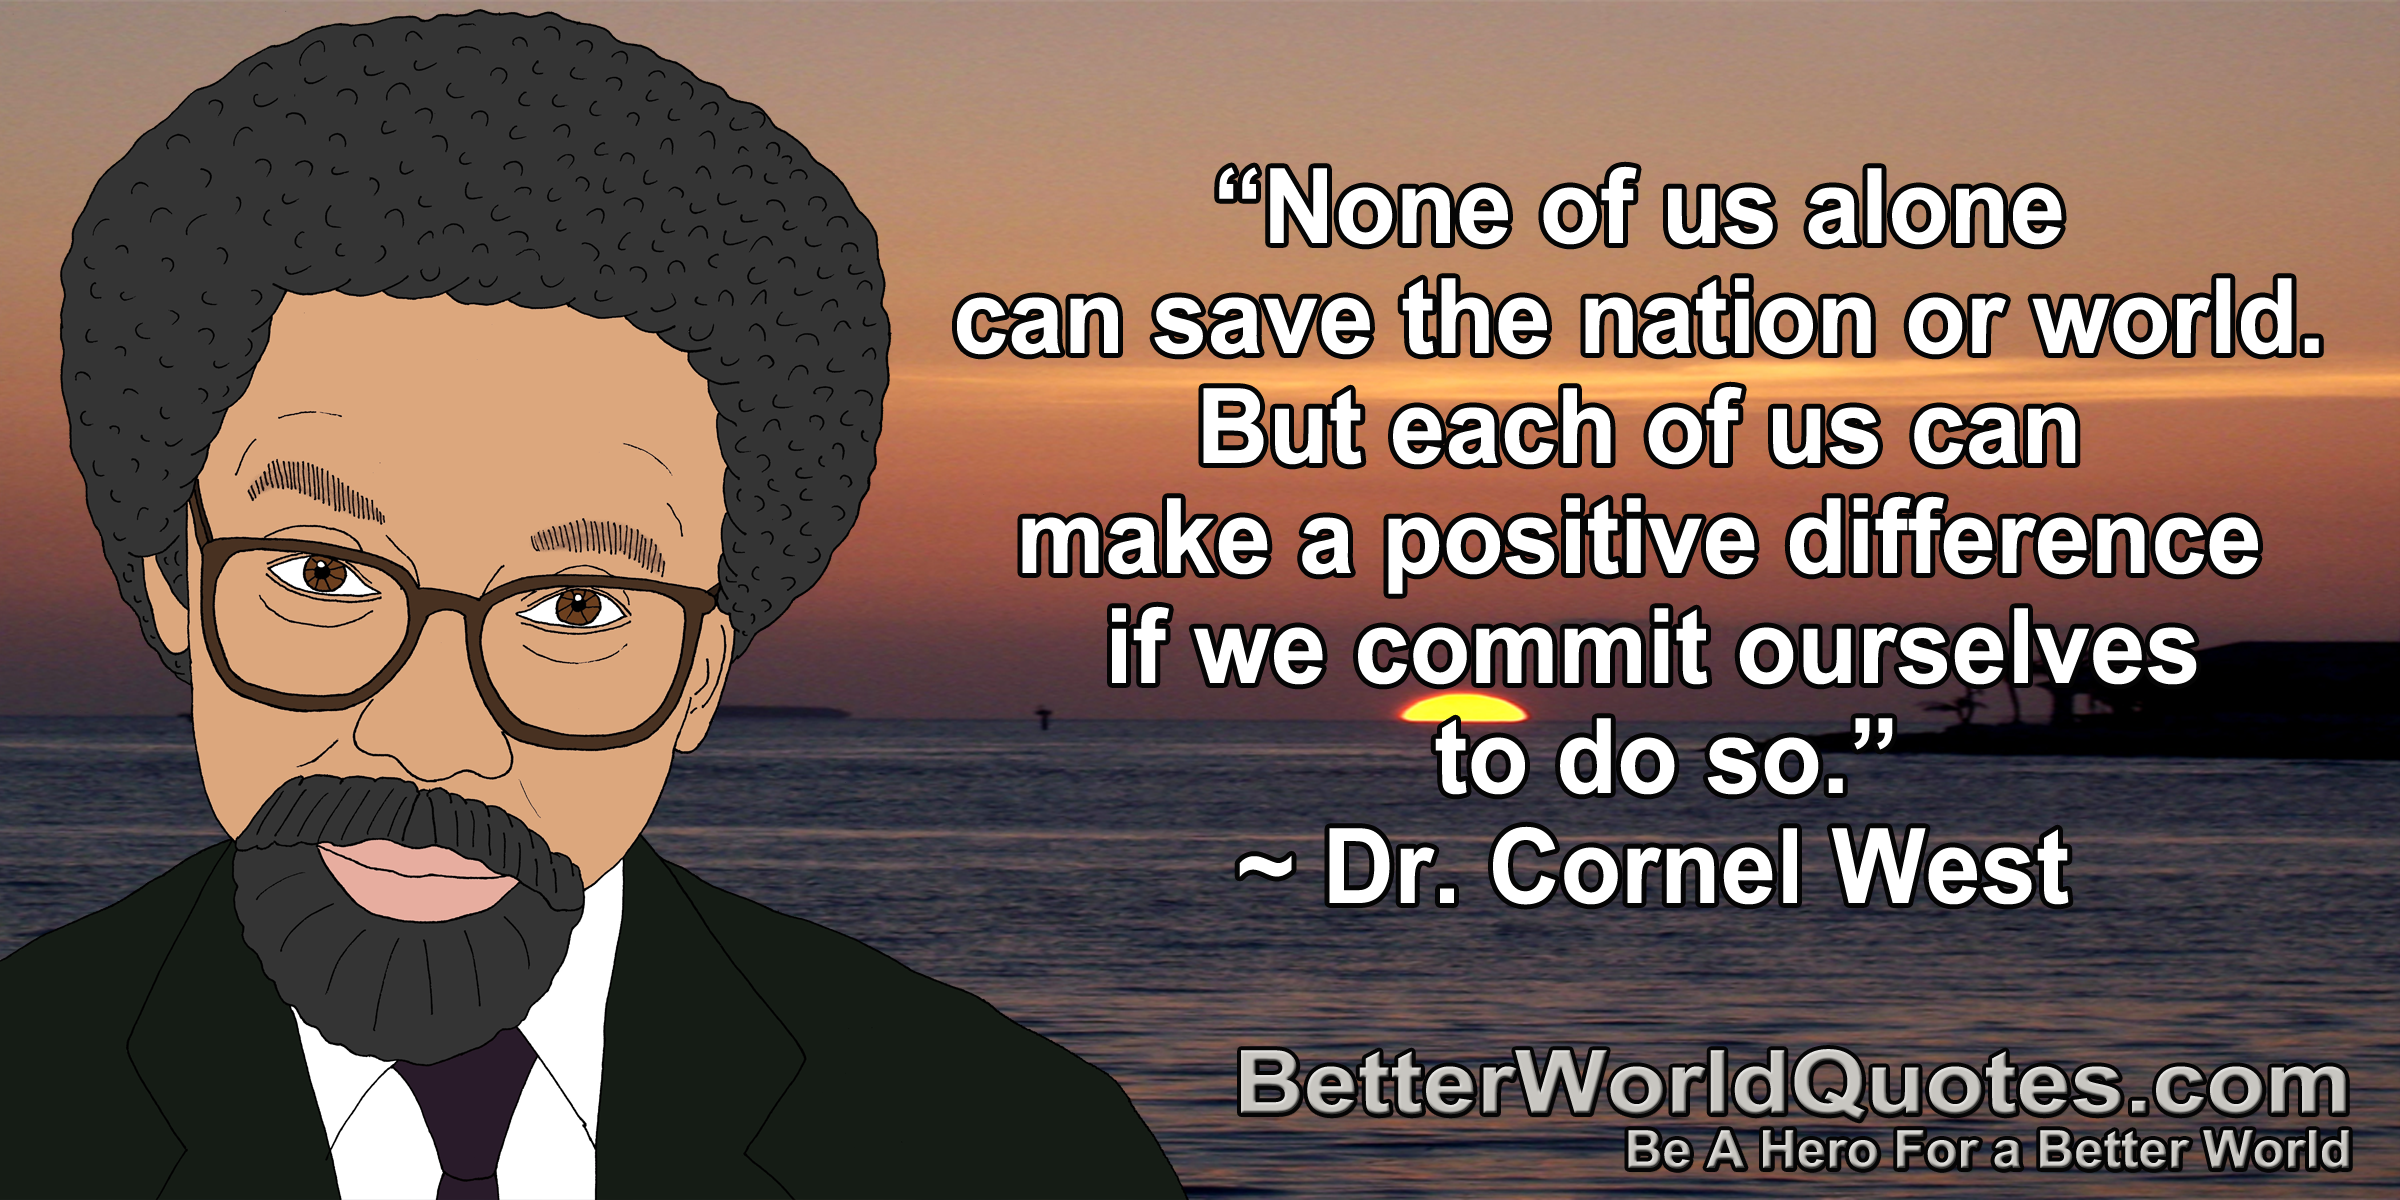 Better World Quotes Make A Difference